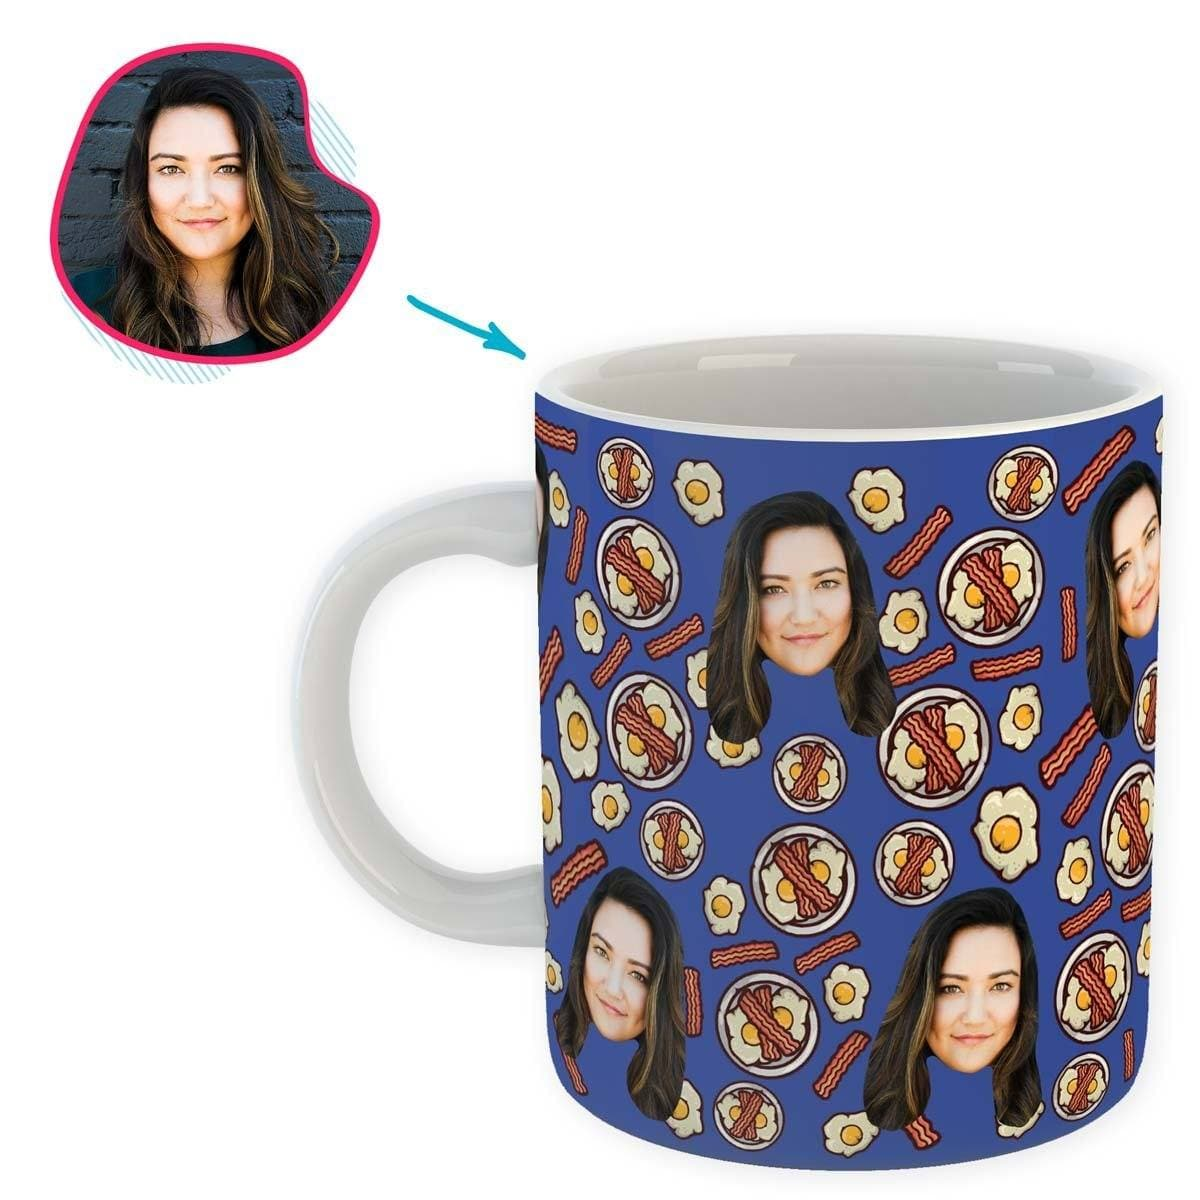 darkblue Bacon and Eggs mug personalized with photo of face printed on it